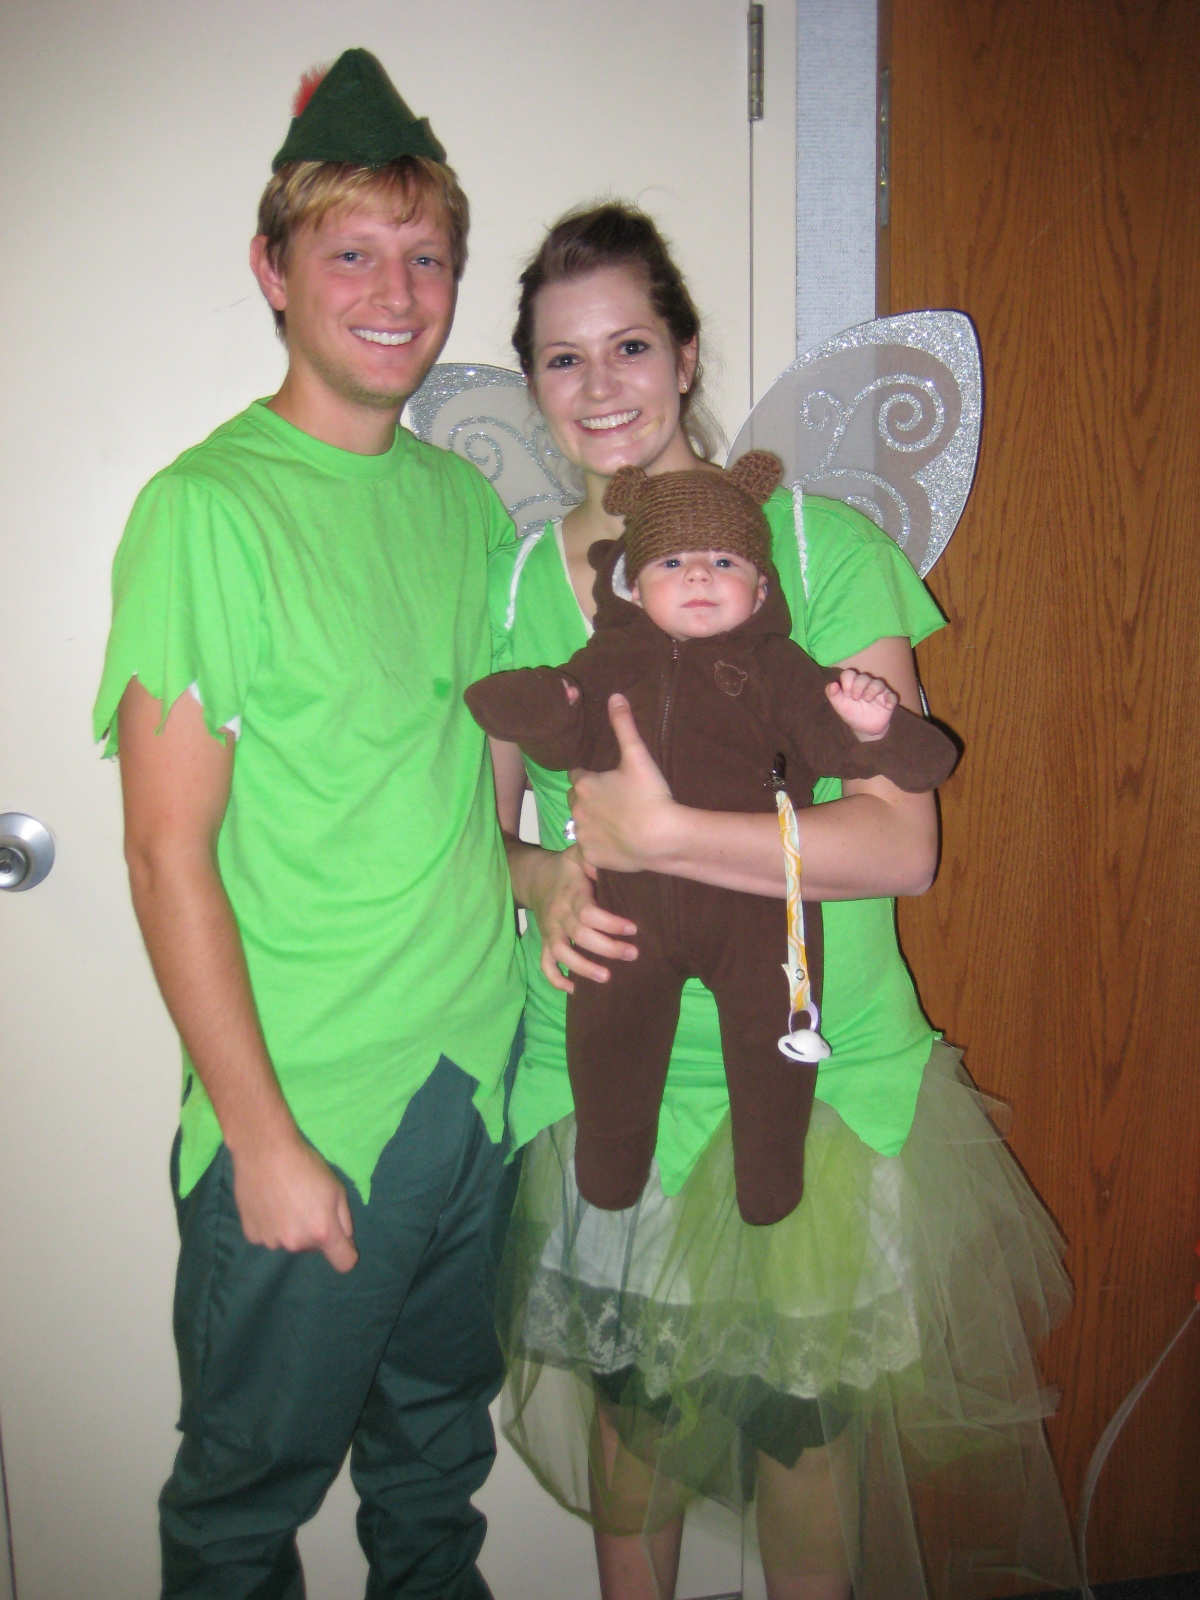 halloween is so fun i love watching the costumes come together im a big fan of group costumes especially when there is a baby involved peter pan